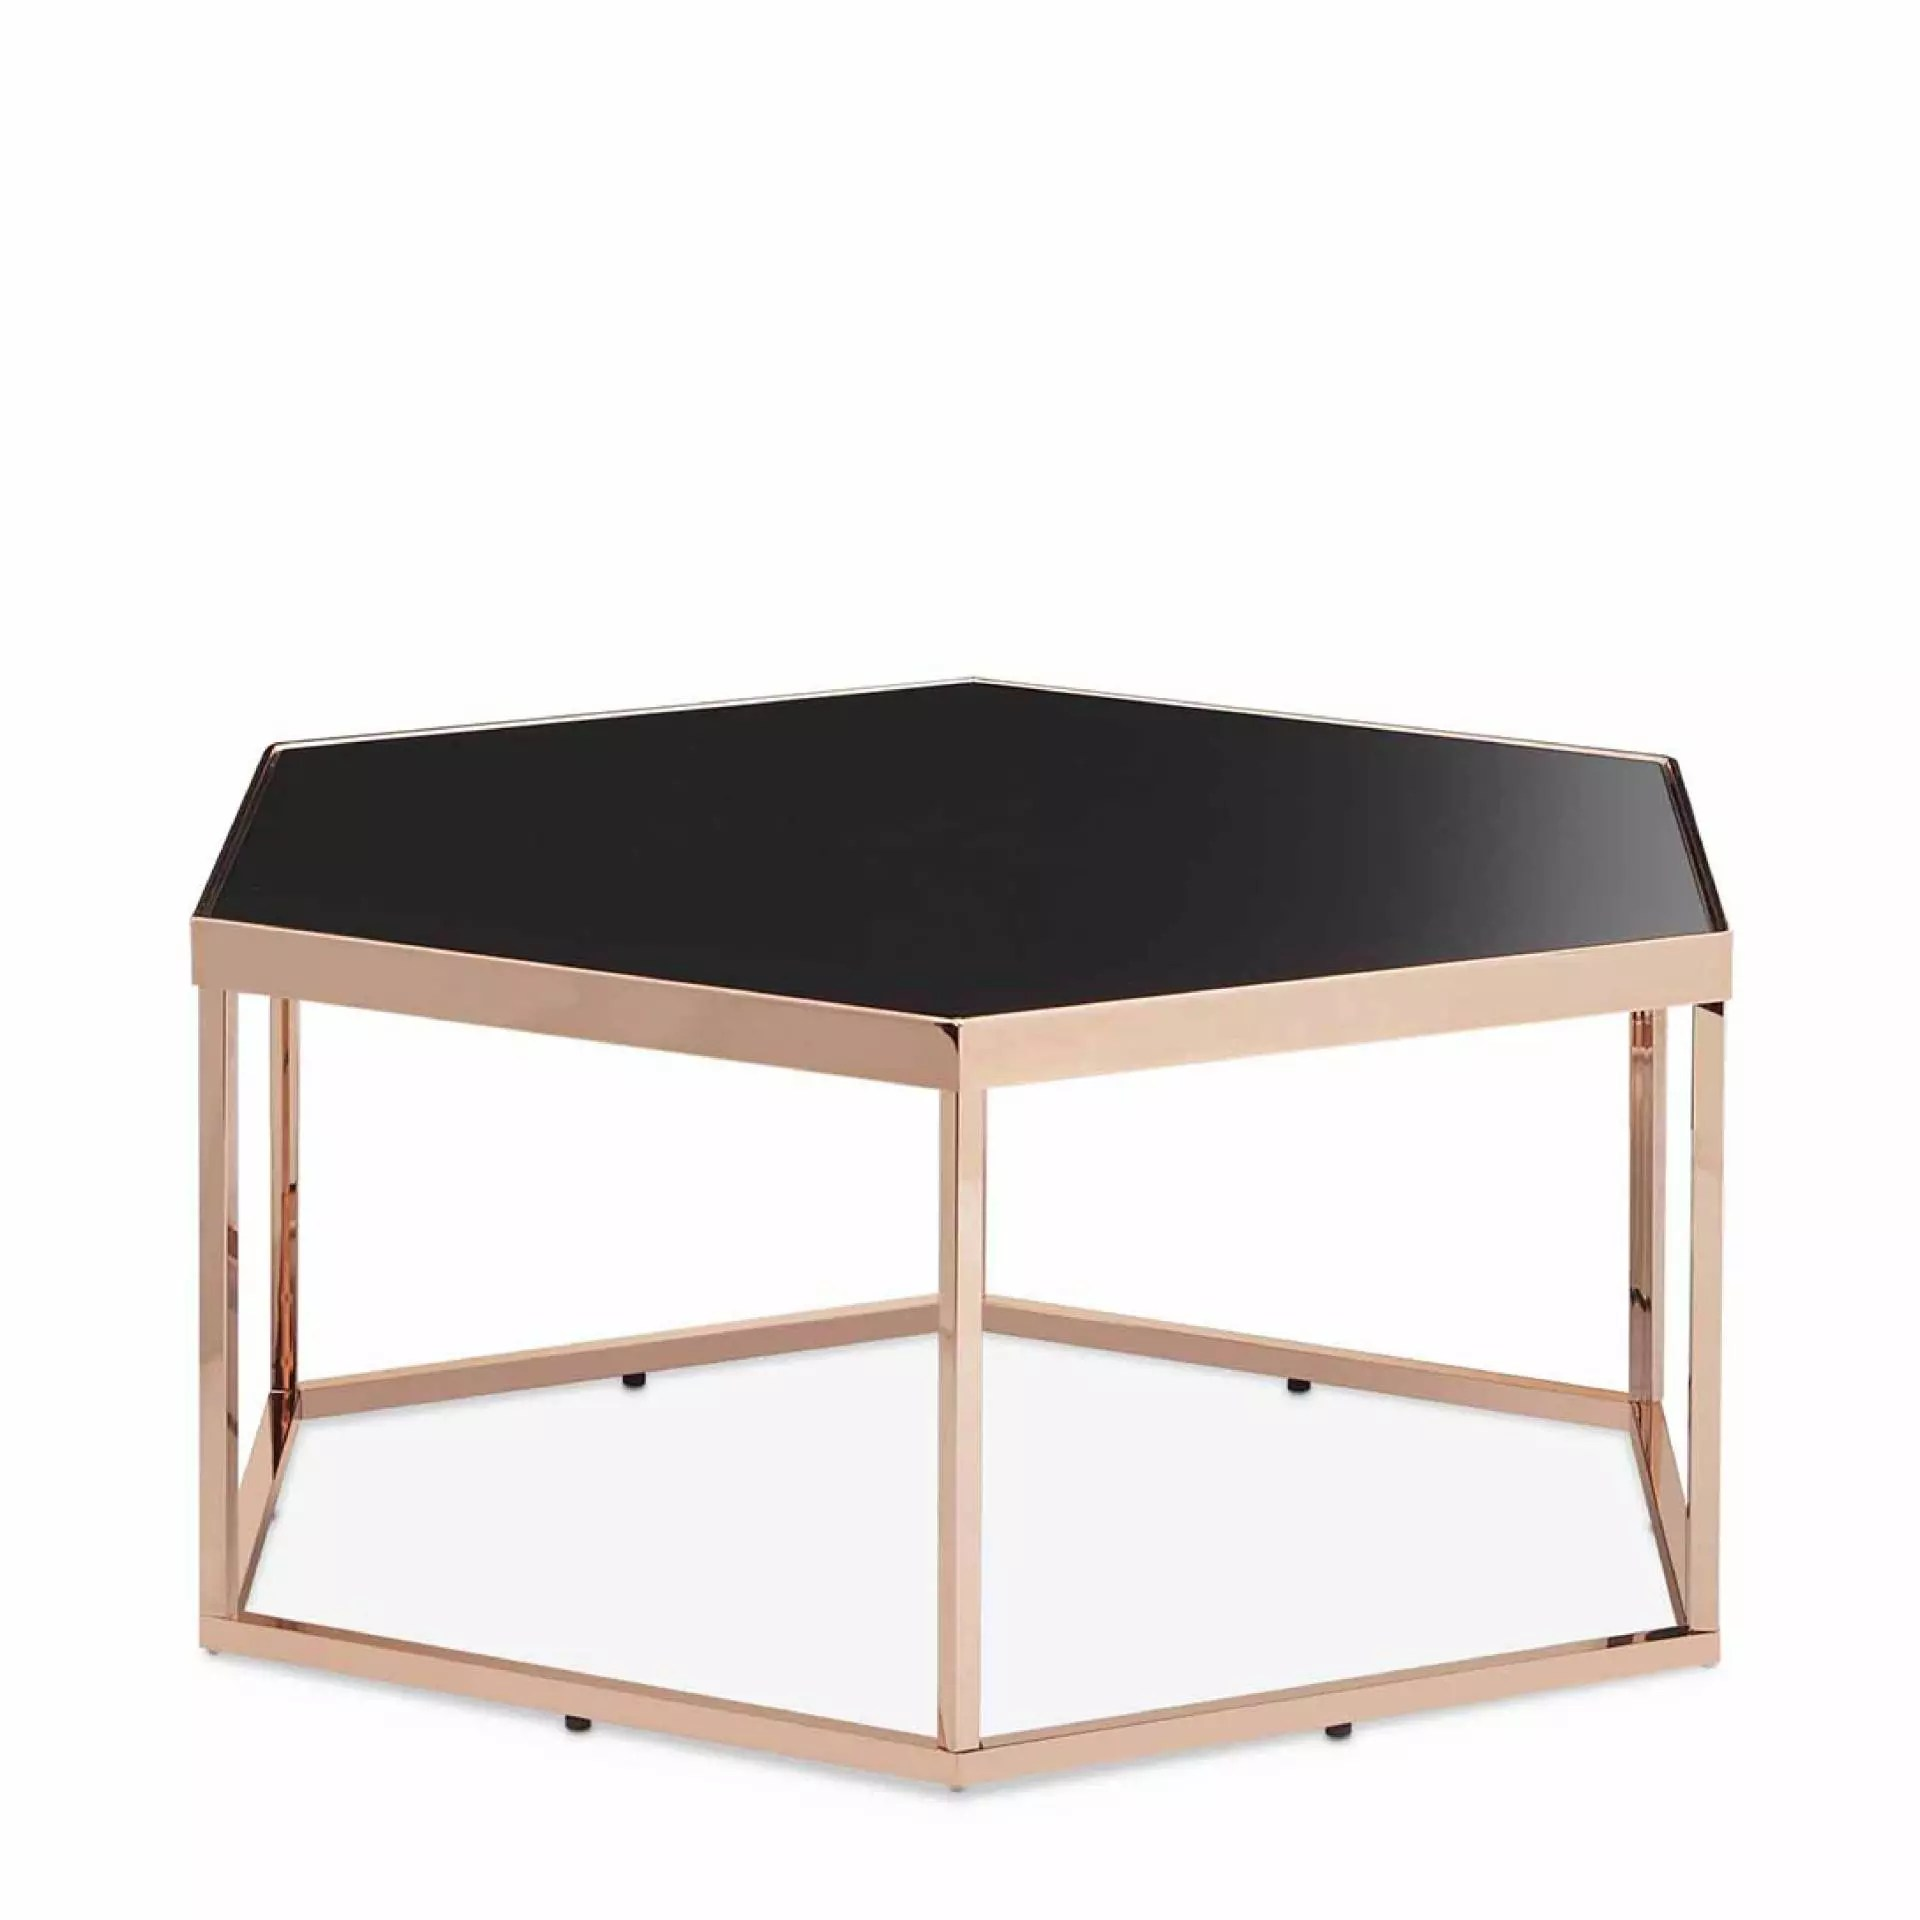 hexagonal black glass coffee table